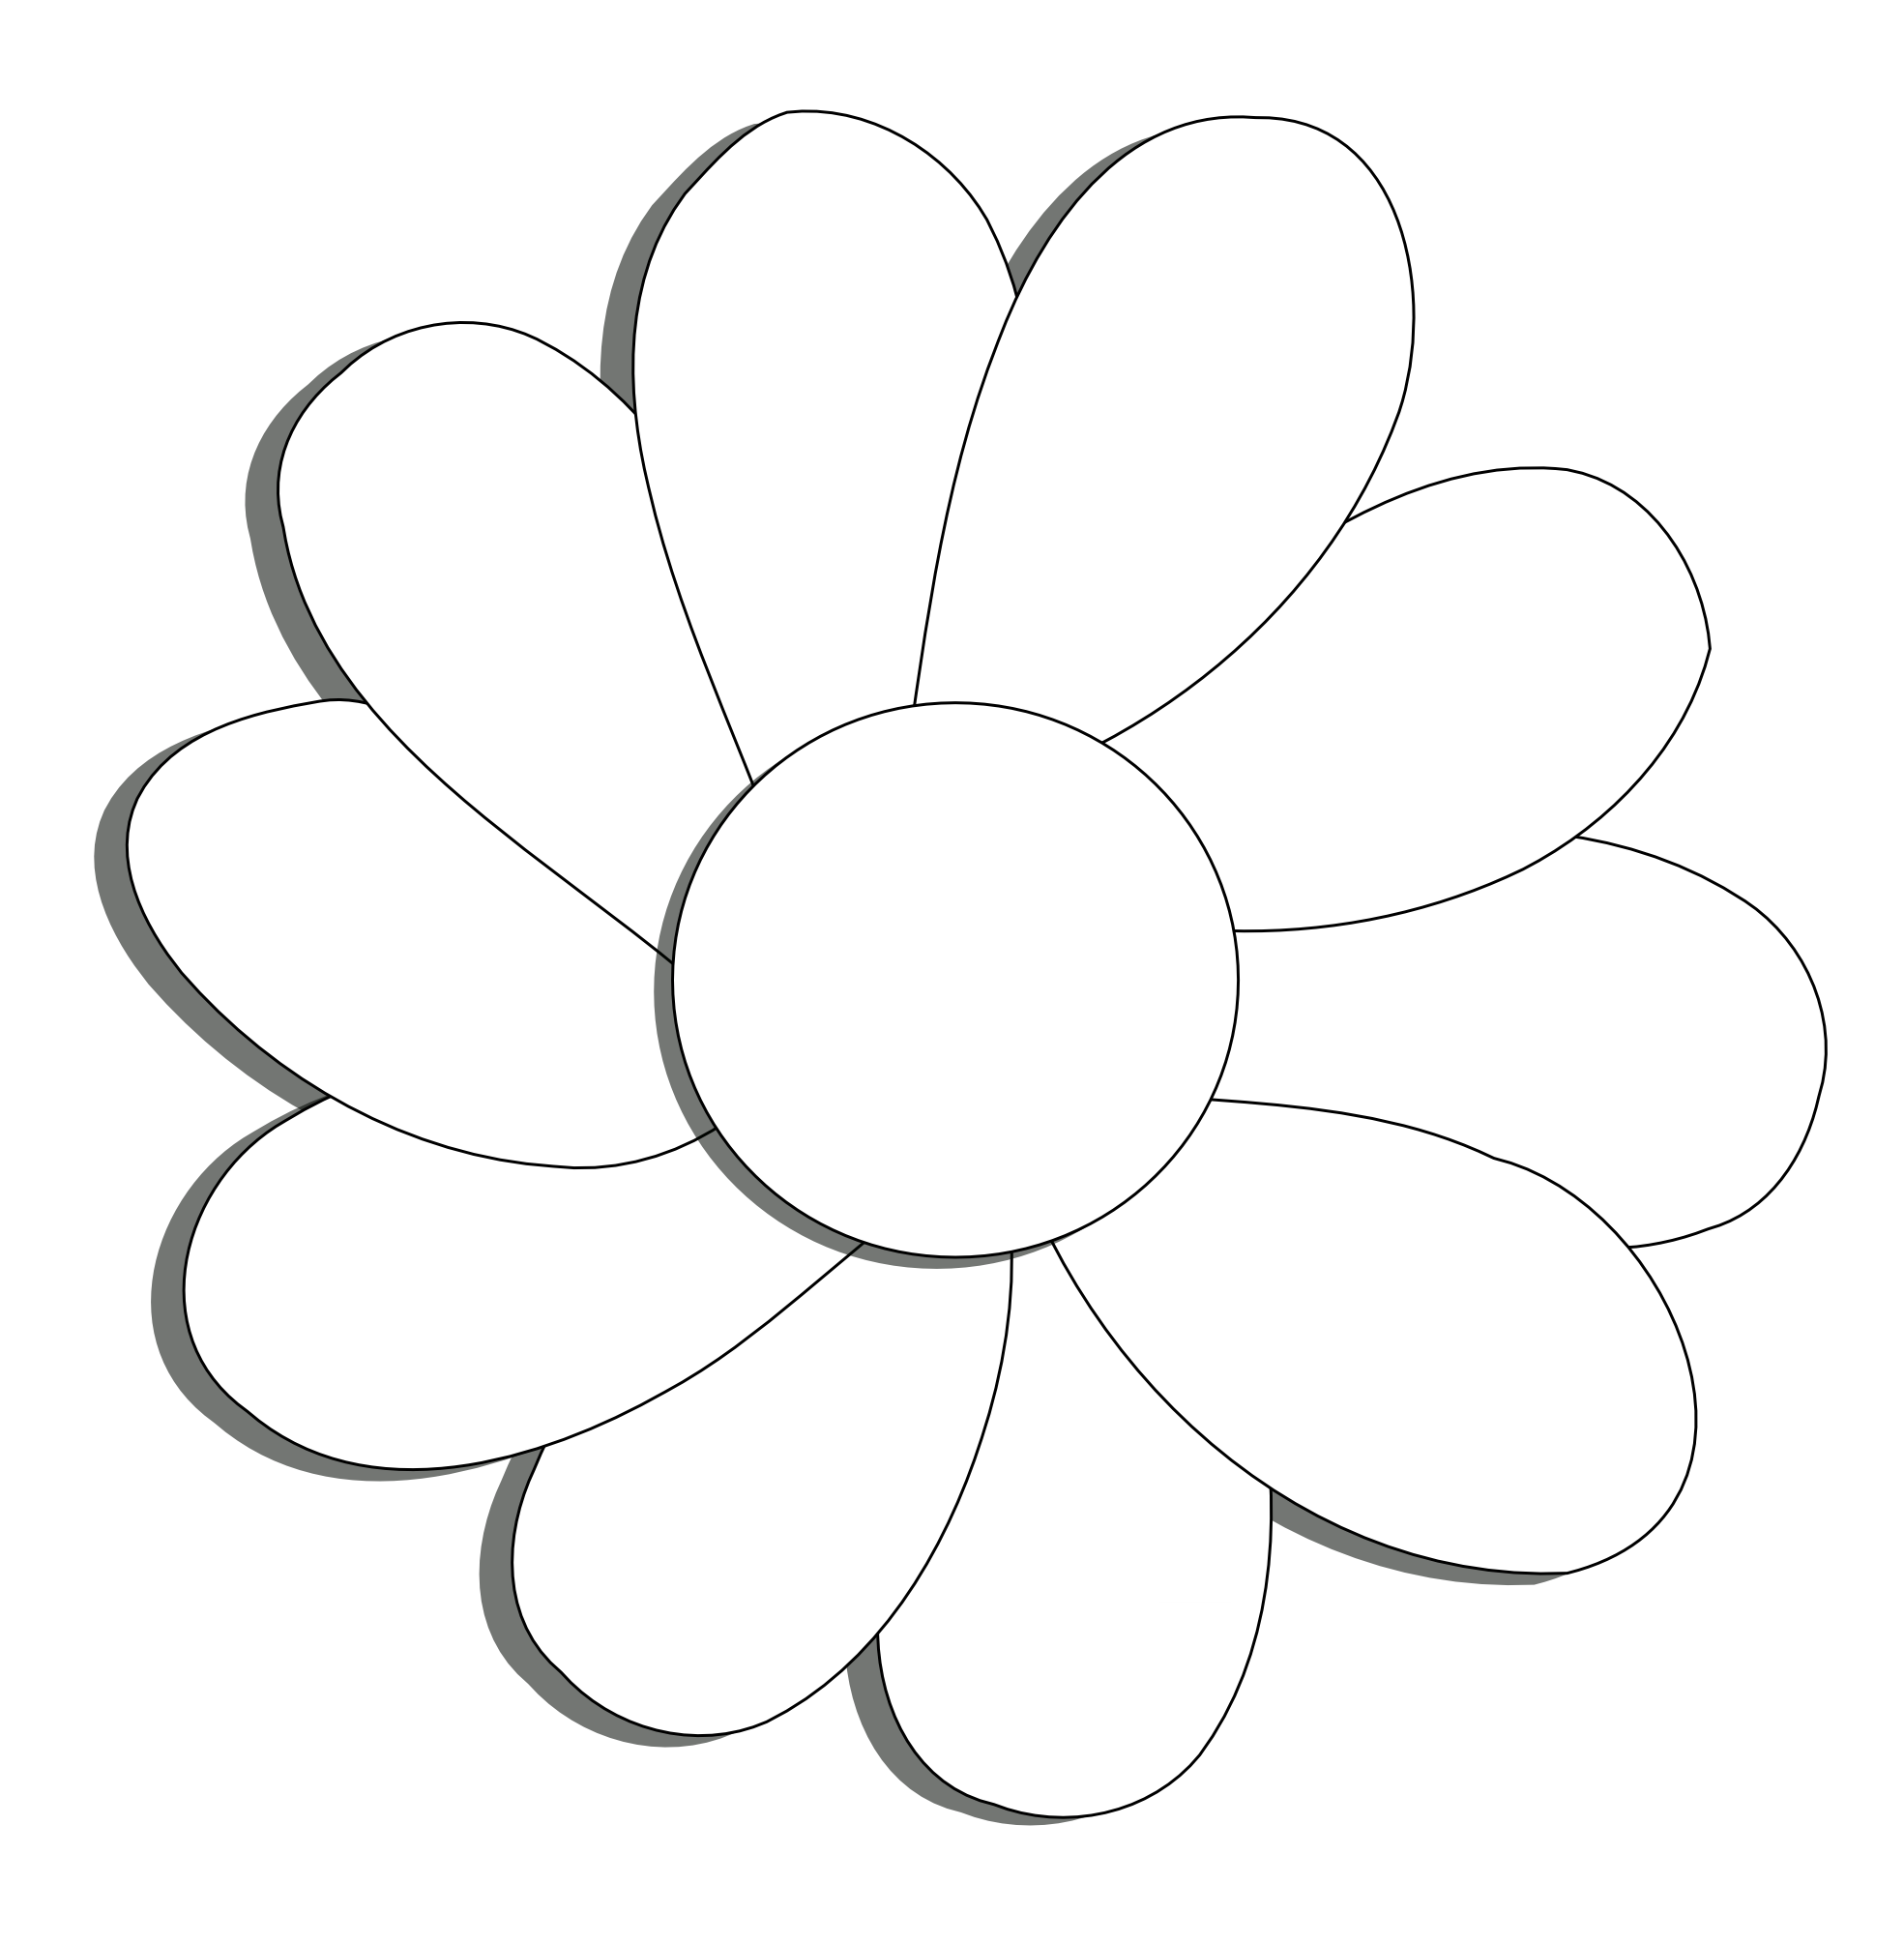 coloring flower png plant clipart black and white clipart panda free coloring png flower